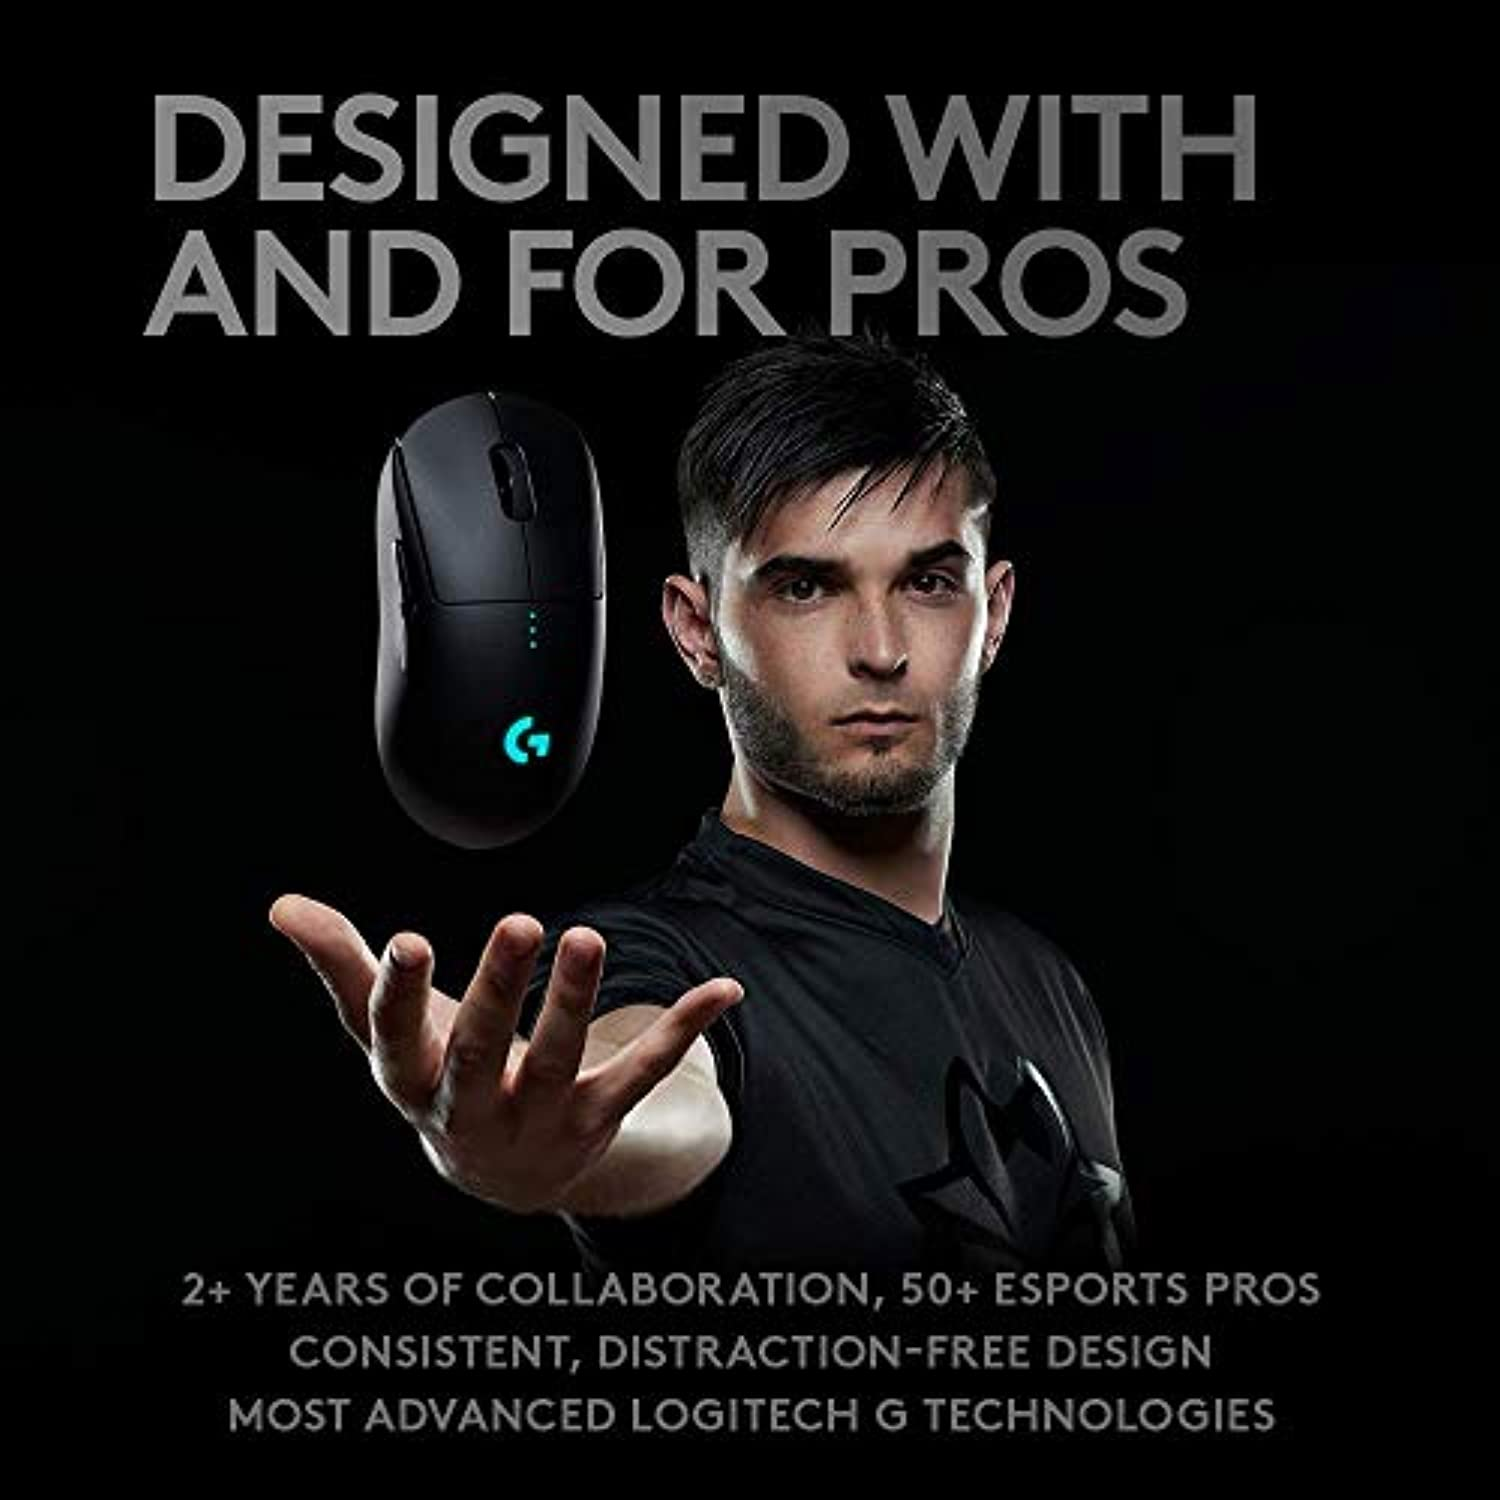 Classier: Buy Logitech G Logitech G Pro Wireless Gaming Mouse with Esports grade performance